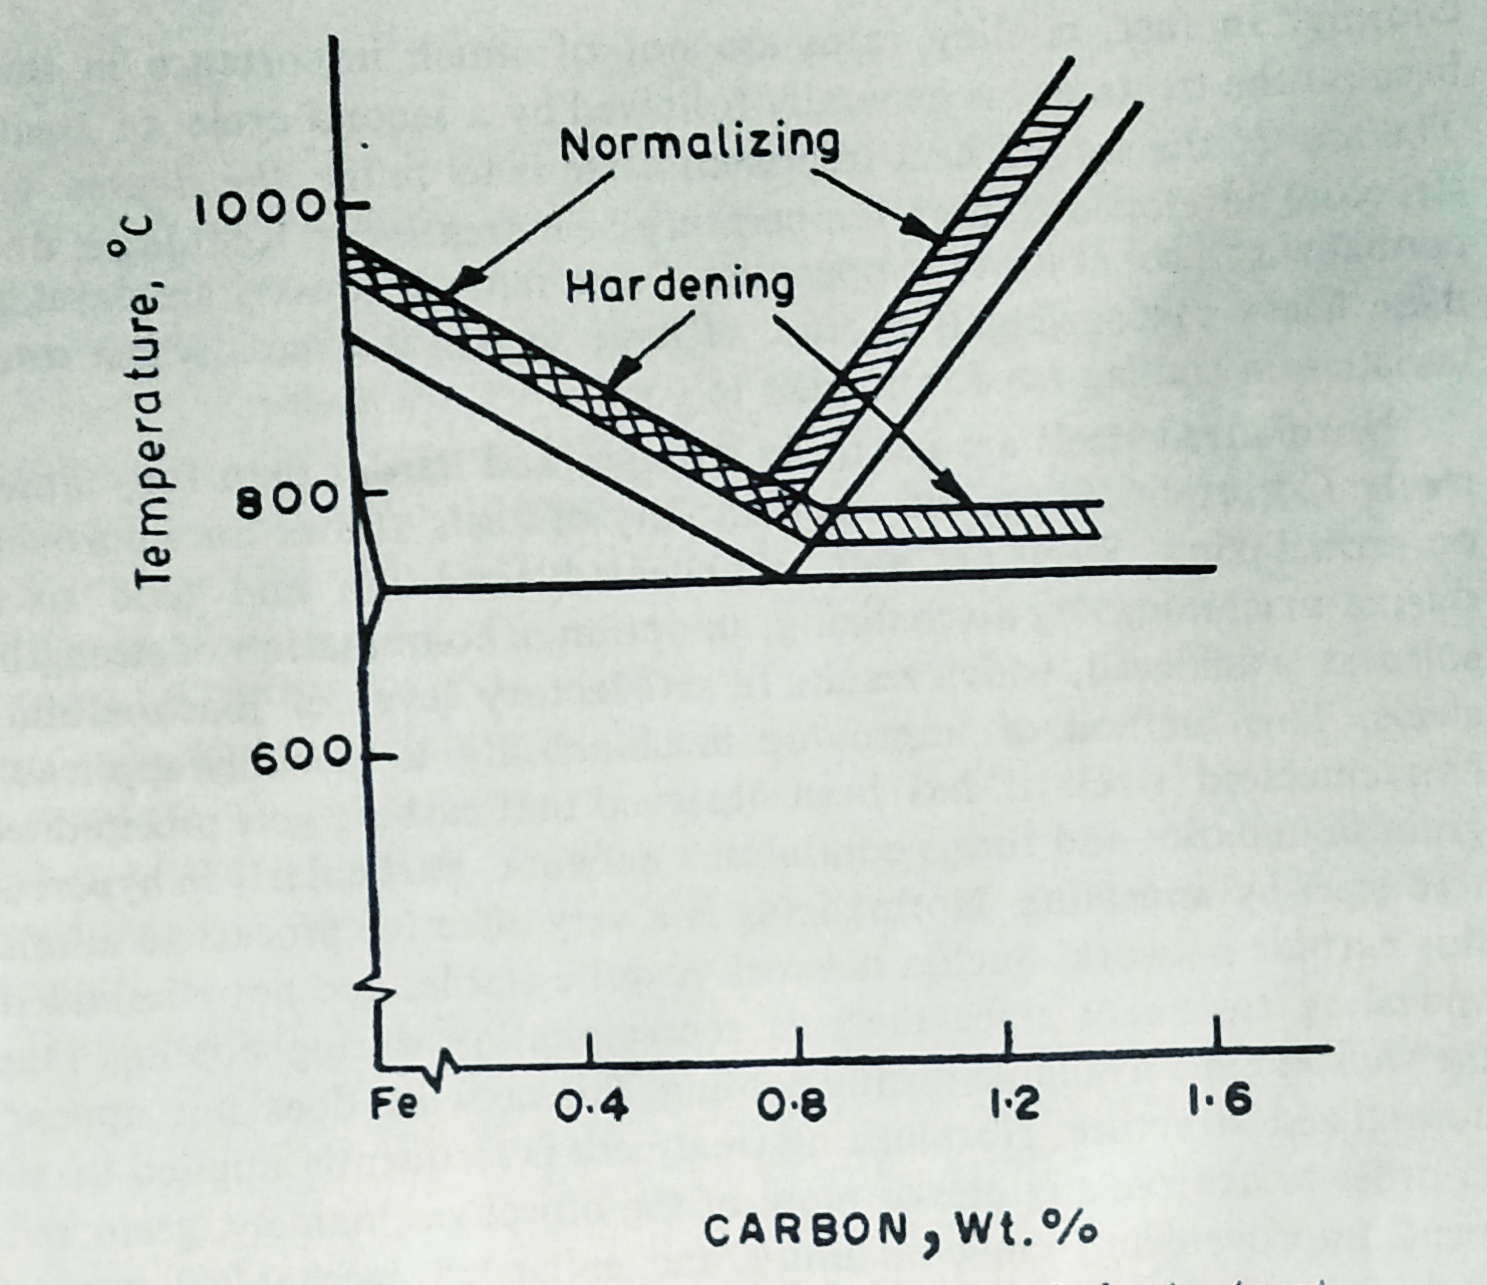 small resolution of normalizing hardening heat treatment for steels